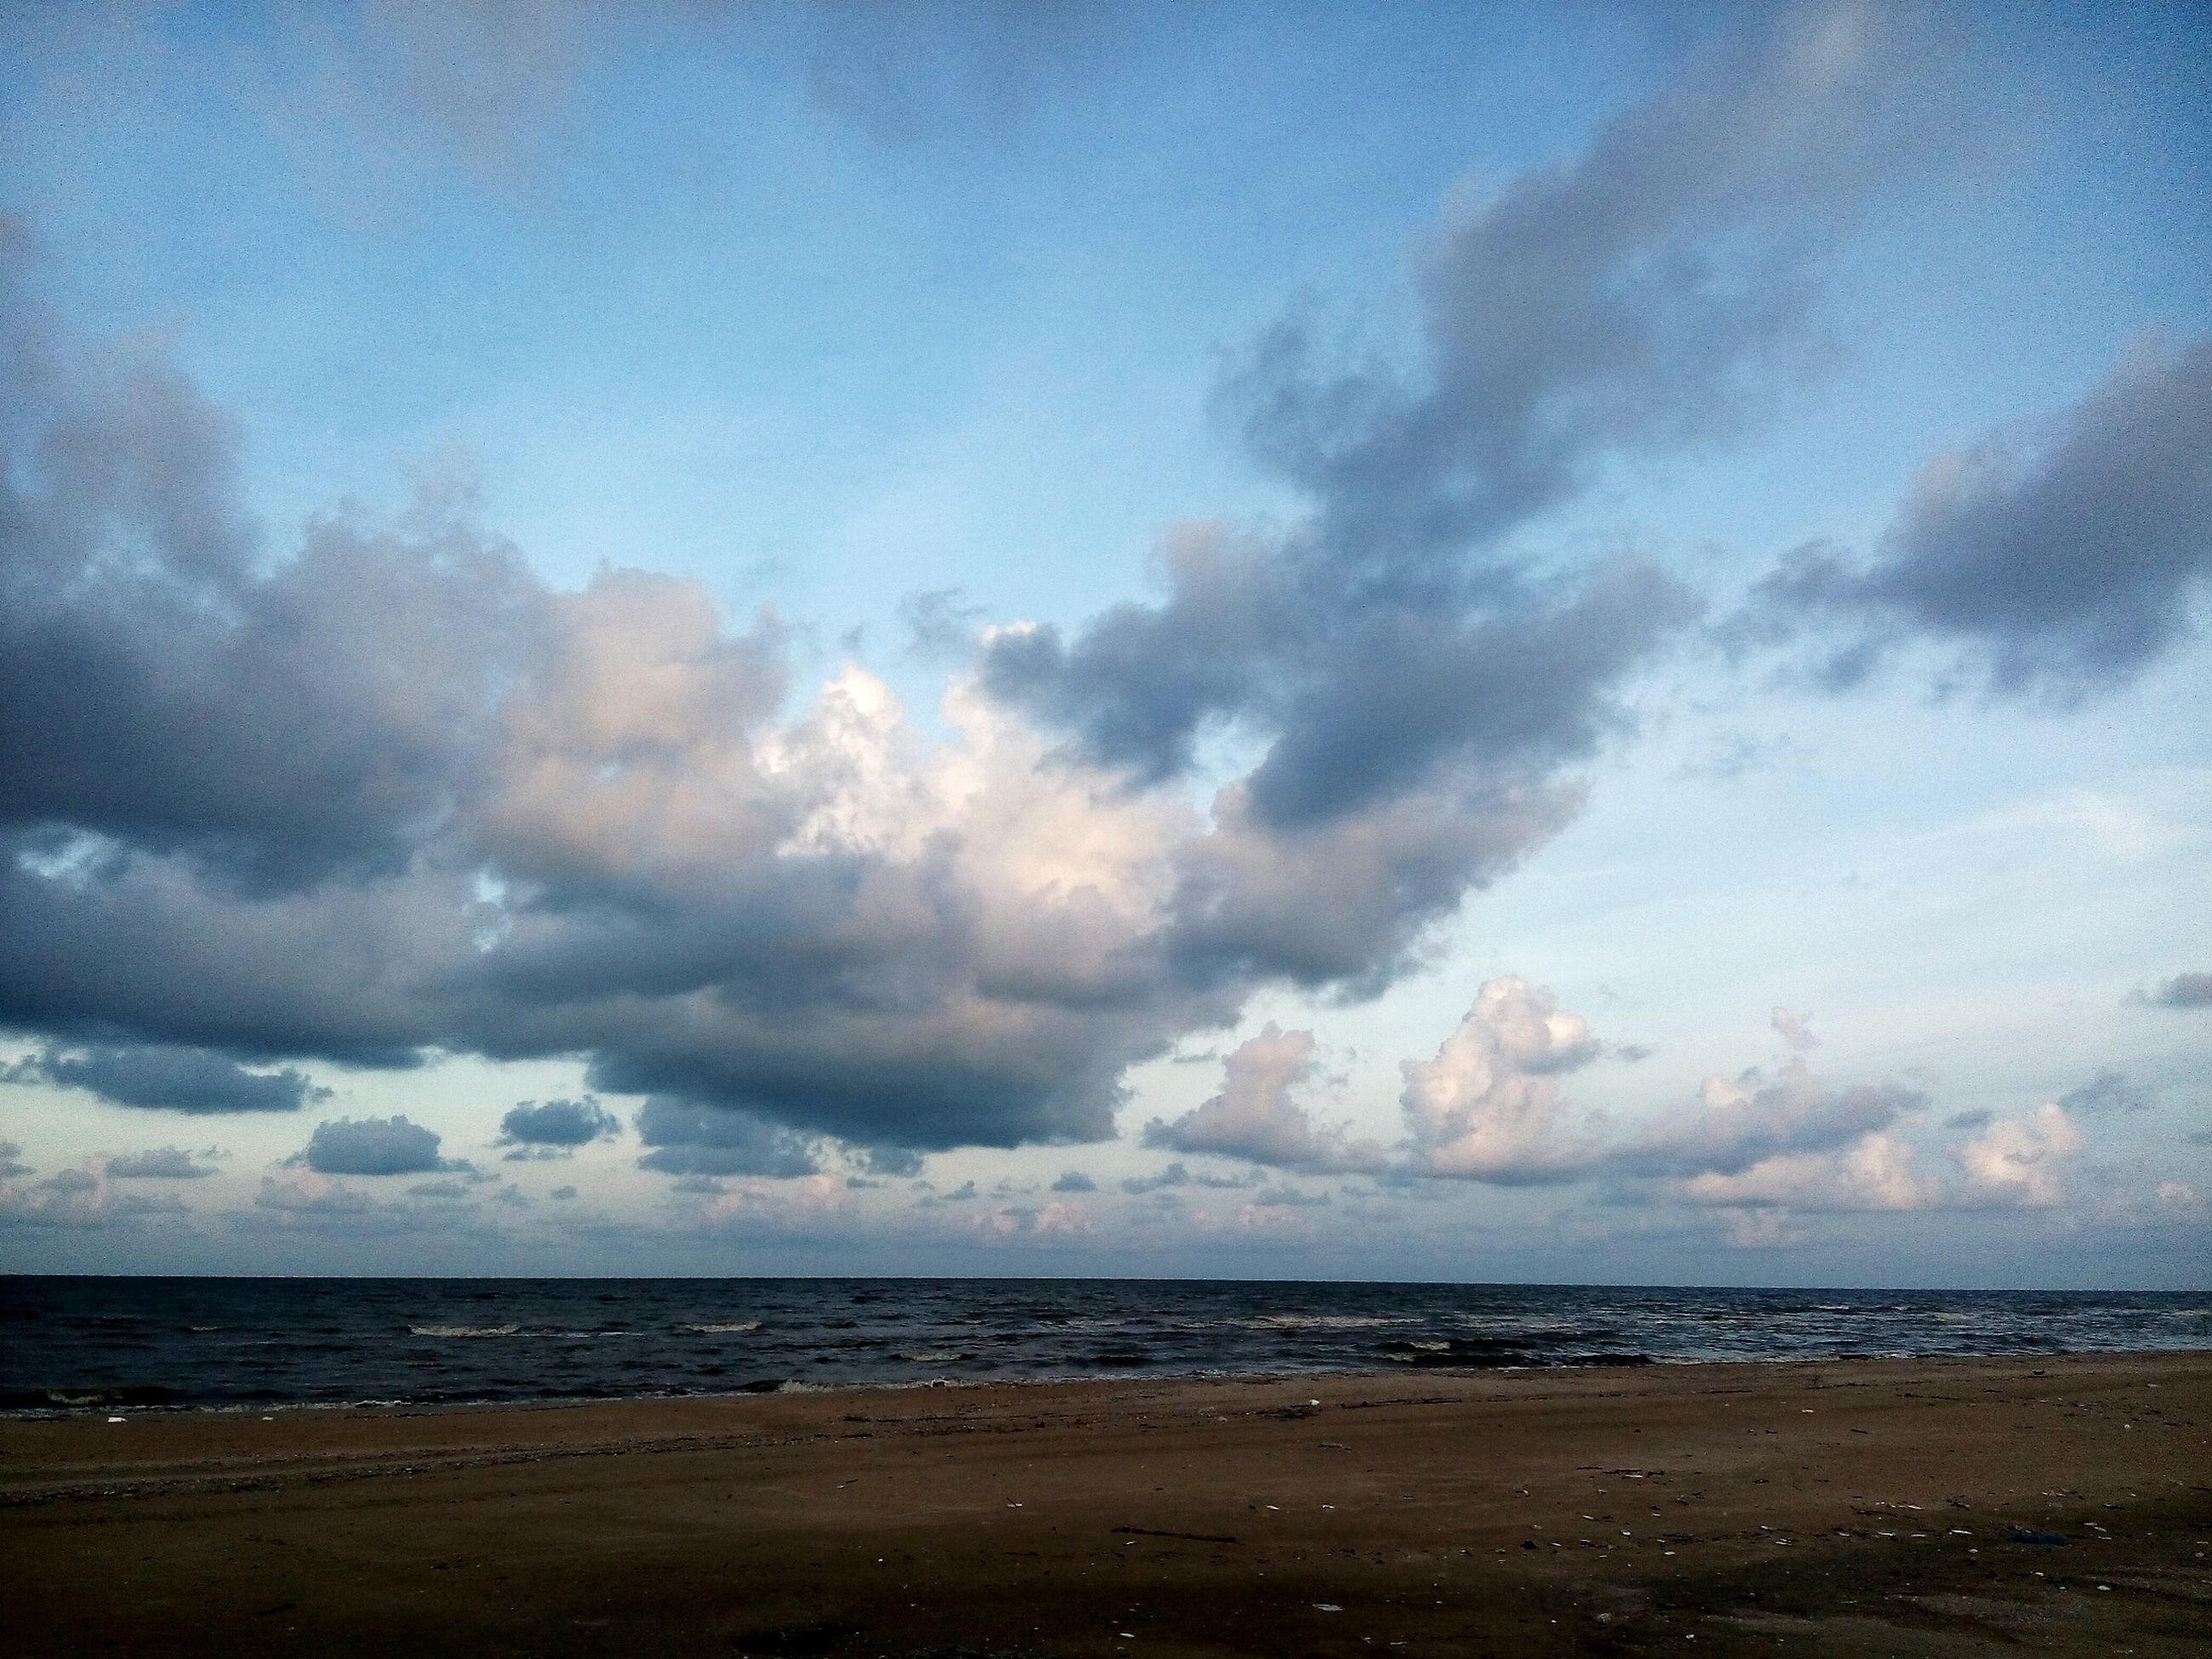 sea, beach, horizon over water, cloud - sky, water, sky, scenics, beauty in nature, sand, no people, outdoors, nature, sunset, travel destinations, wave, day